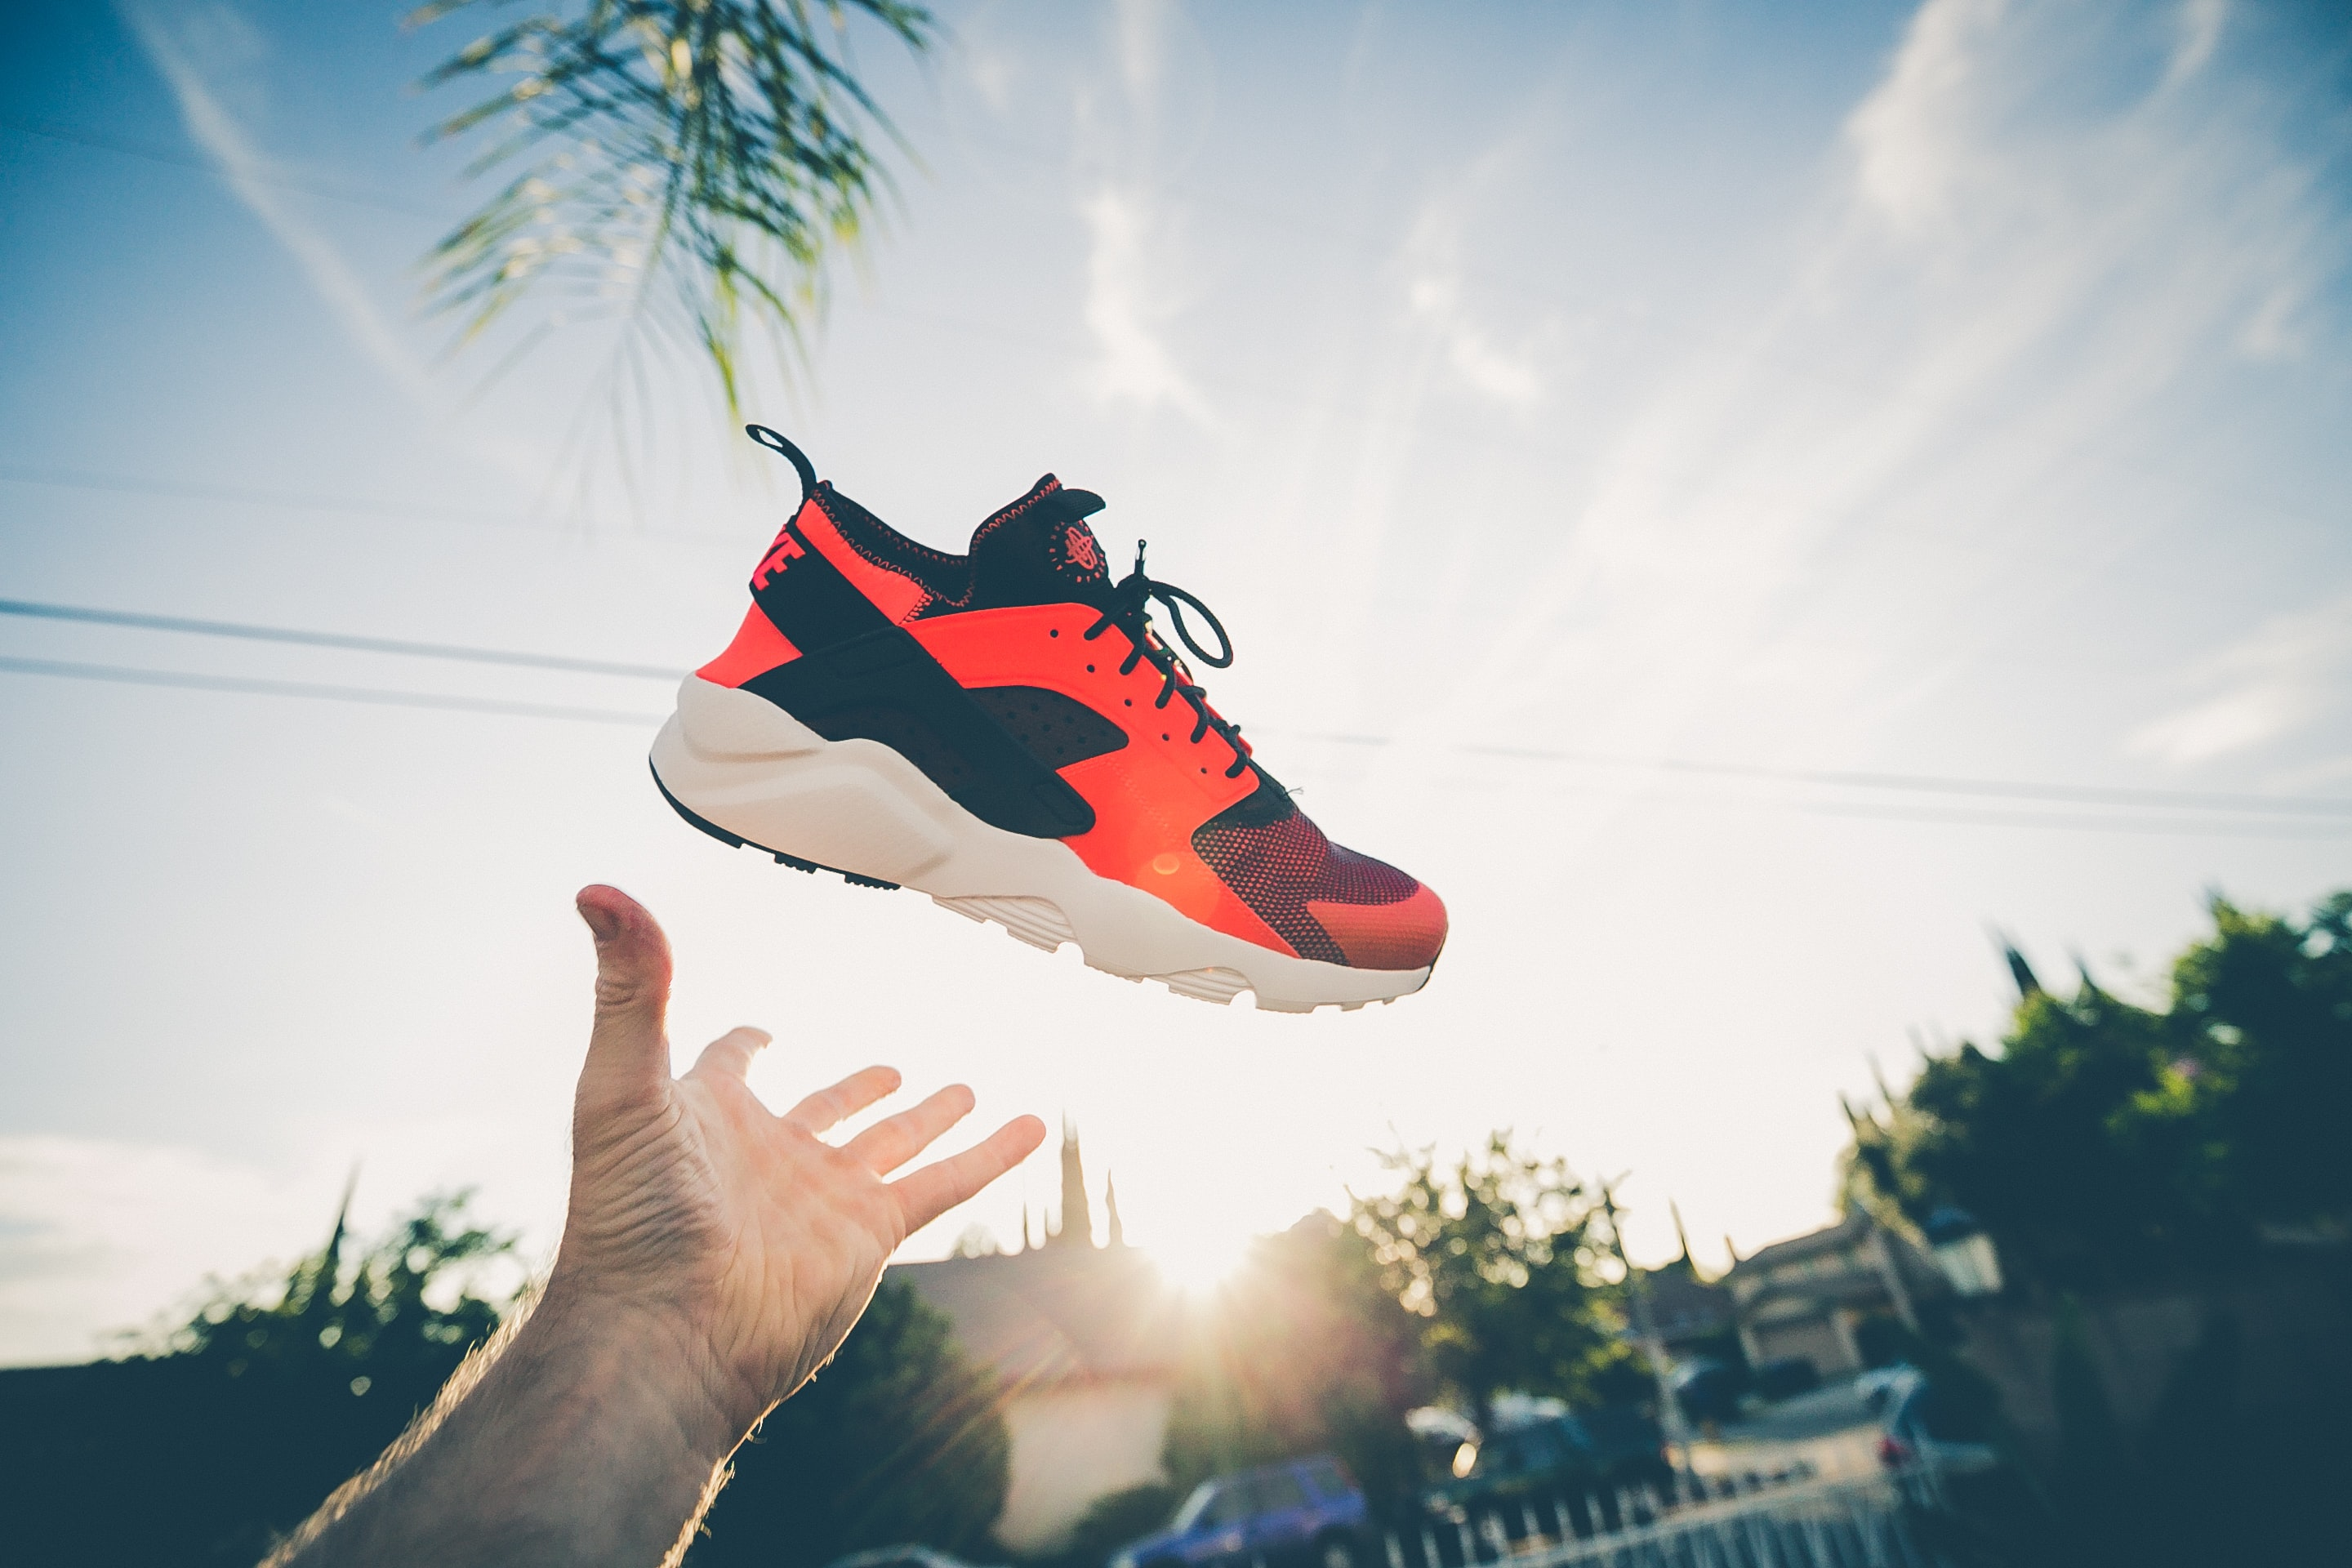 Man tossing red shoes up in the air from his hands